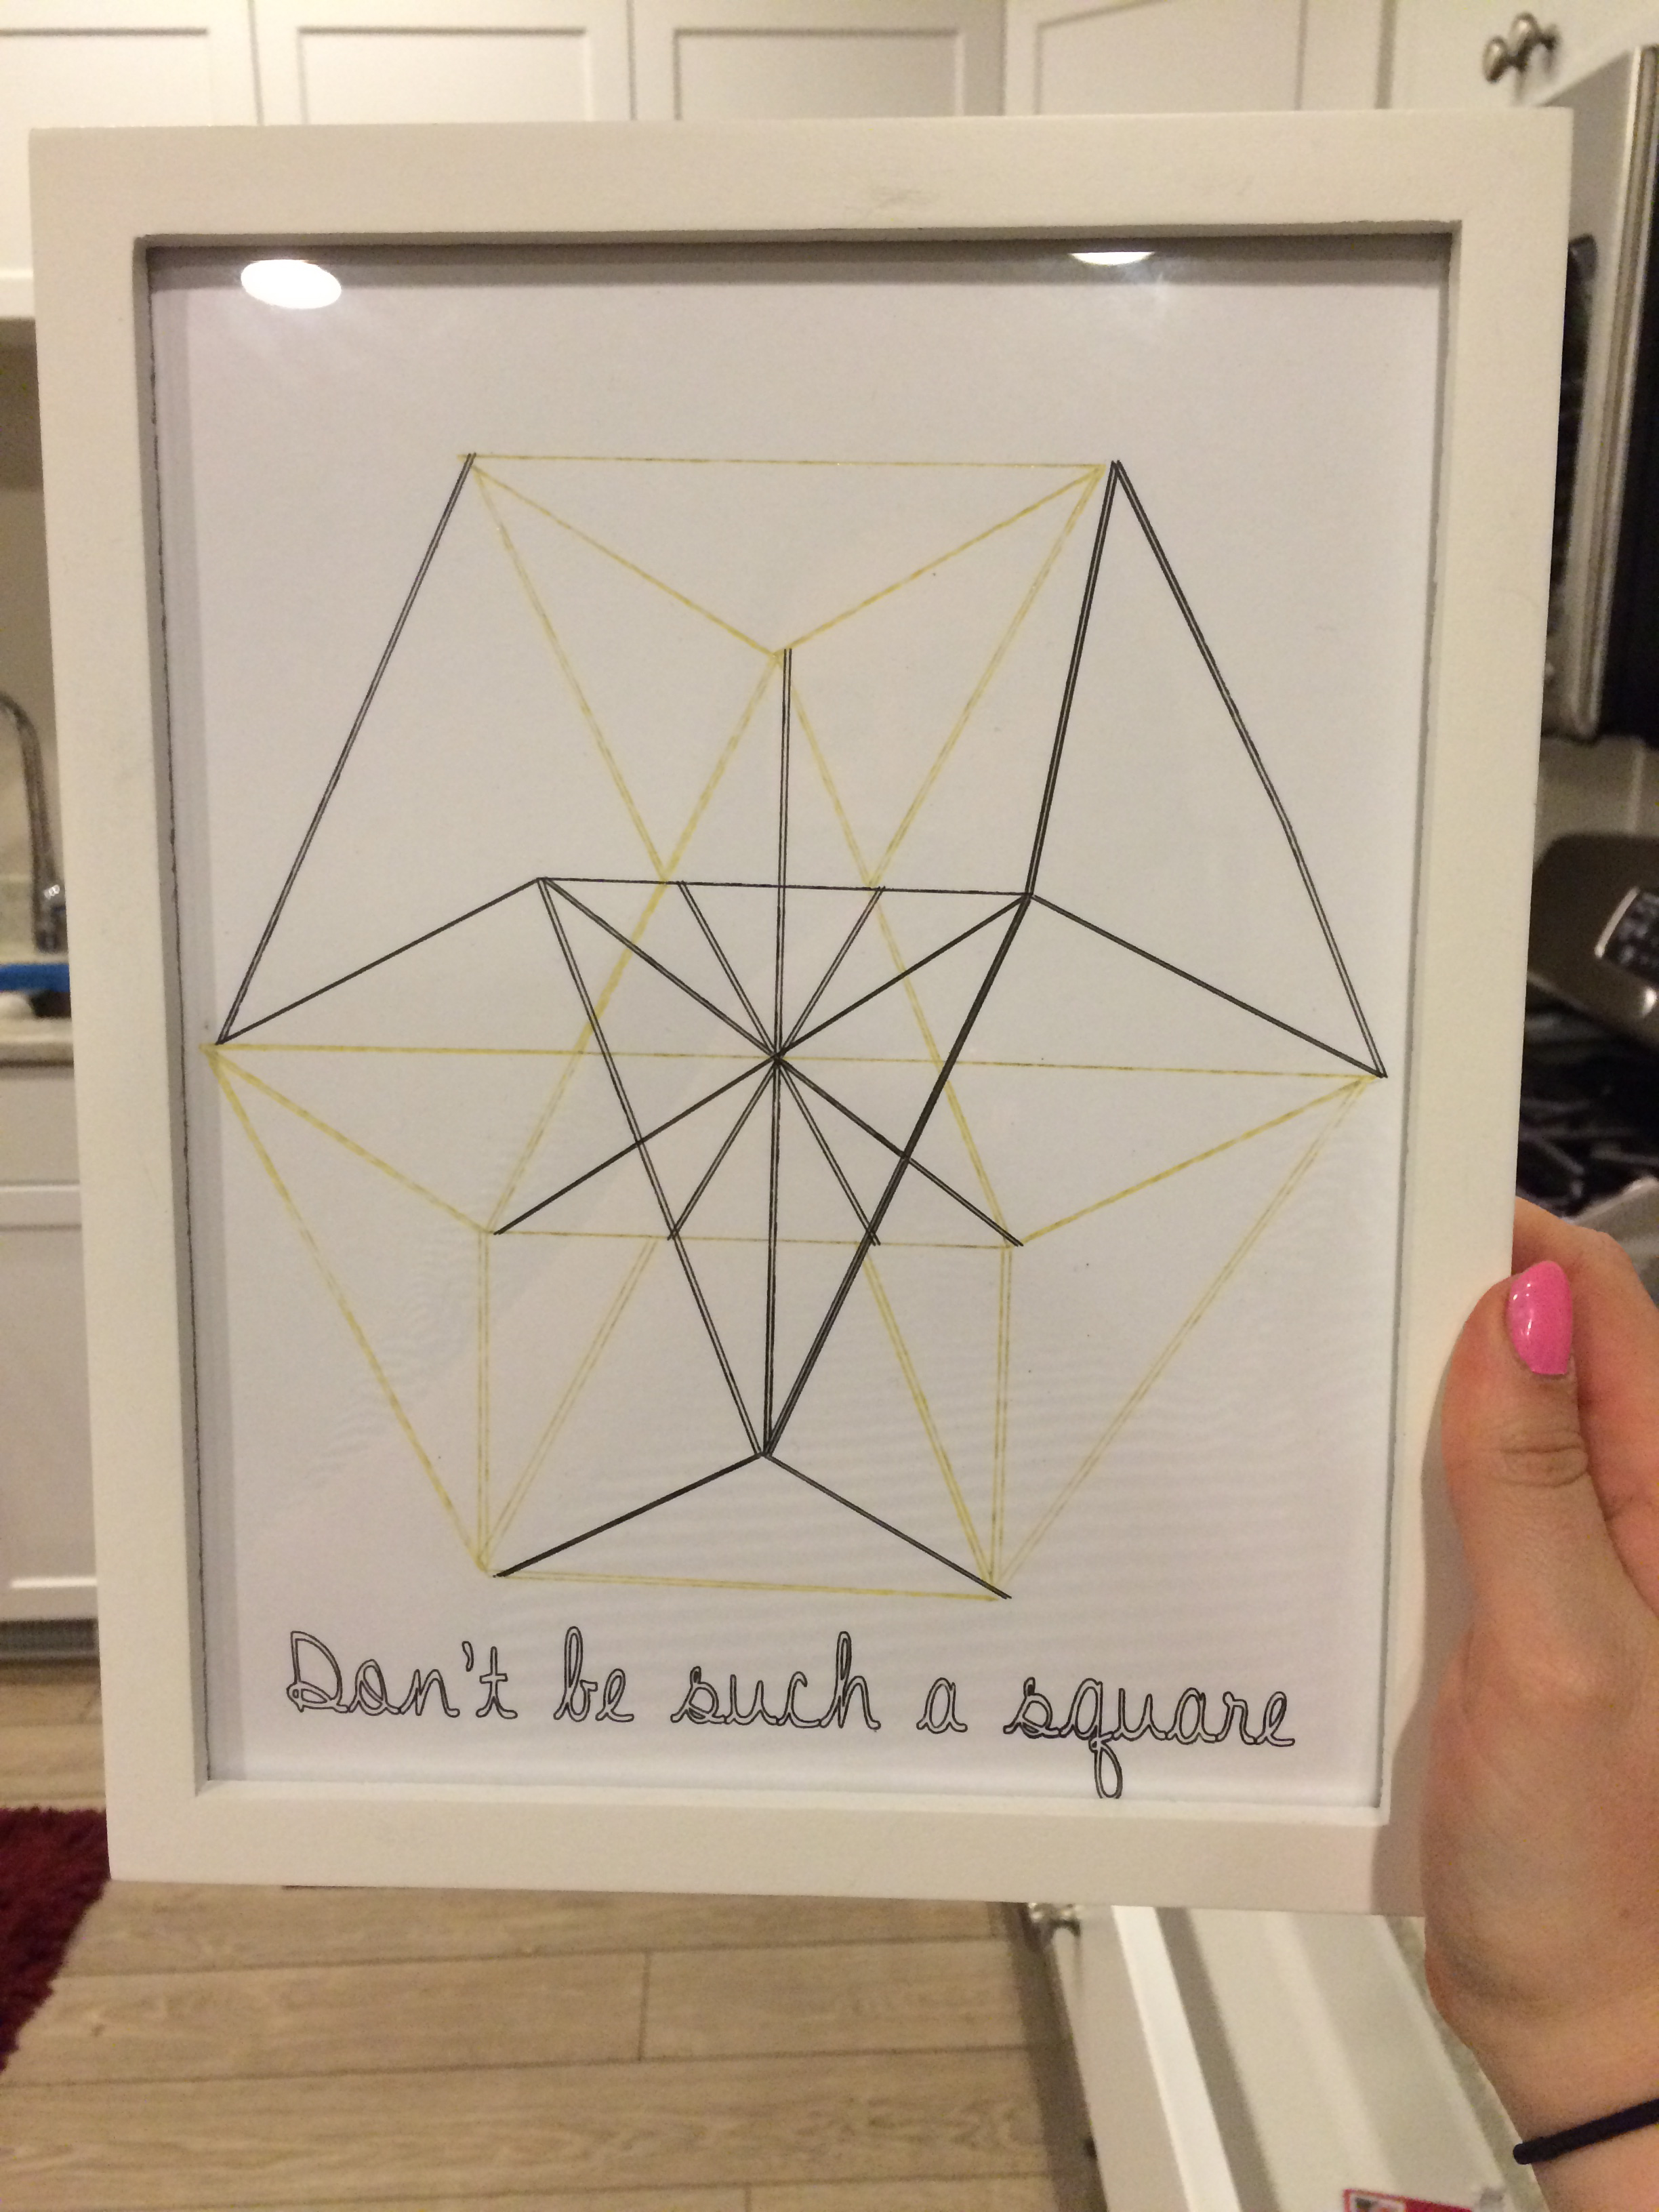 Don't Be Such a Square, Jan 3. 2015 51